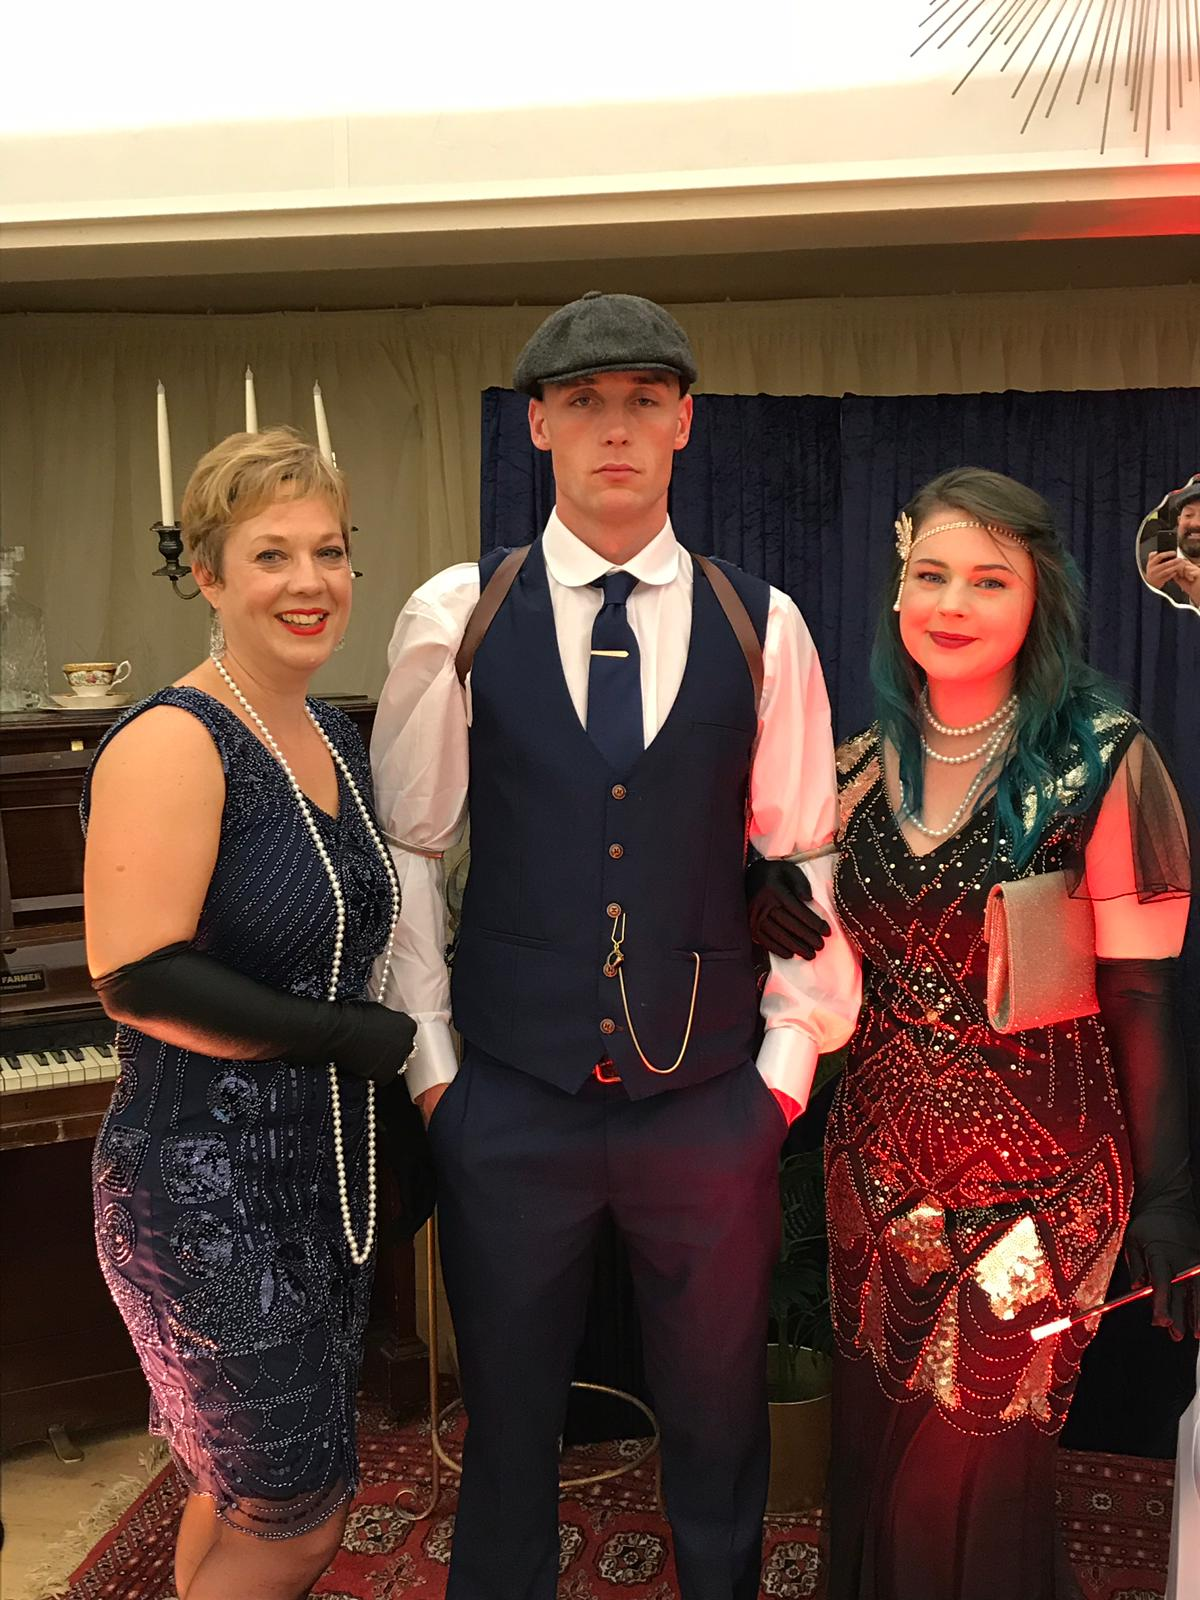 East Markham Peaky Blinders Night was a roaring success with everyone dressed in 1920's attire, a live singer performing post modern jukebox songs and our very own Tommy Shelby. this event was held at east Markham village hall which was transformed by Georgie Muirhead design into a 1920's speakeasy club.  our next peaky's night will be held on Friday 29th march 2019 at ye olde bell, Barney moor, north Nottinghamshire. tickets are available via www.yeoldebell-hotel.co.uk